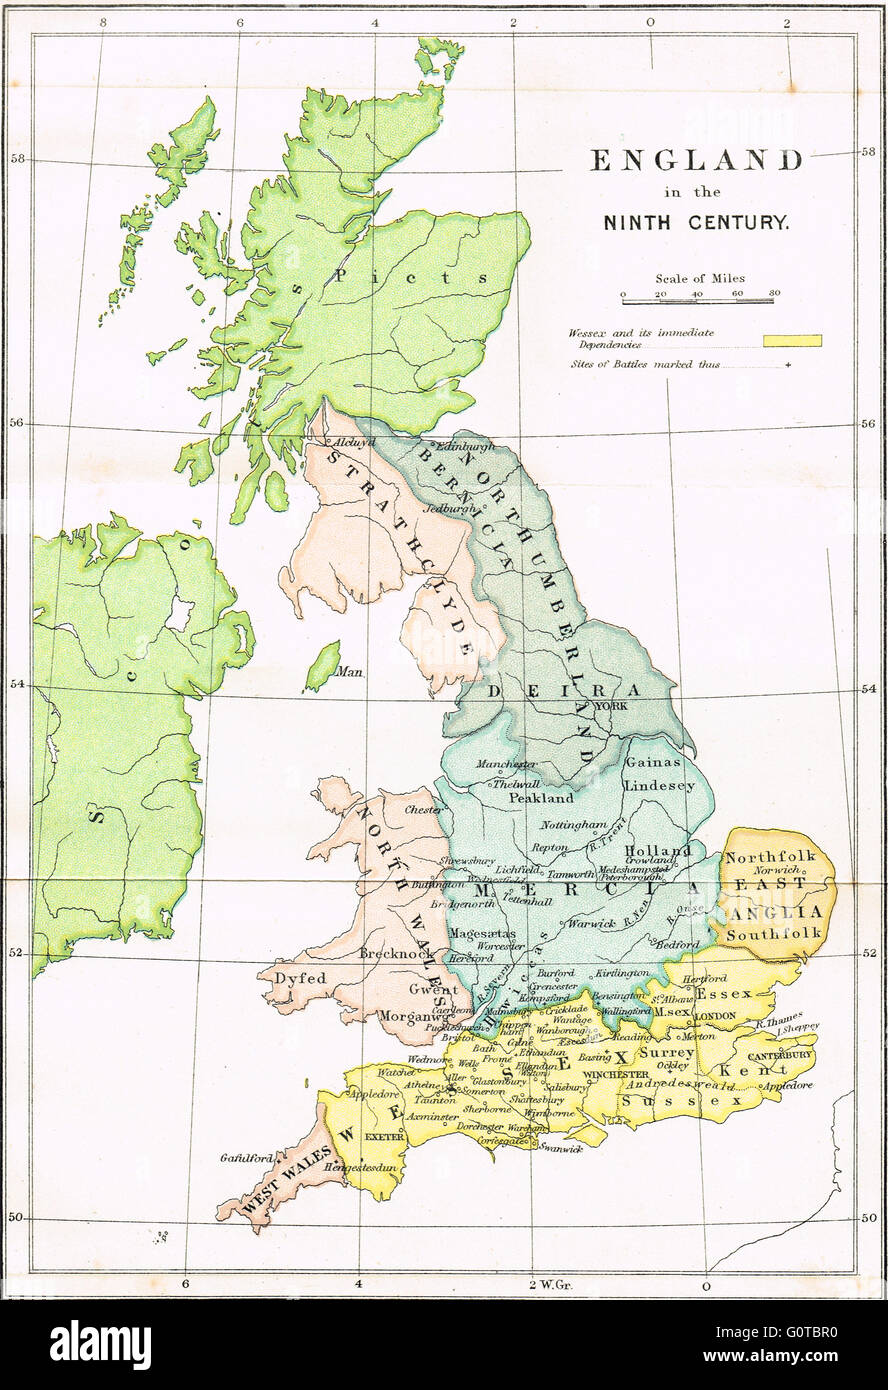 Map Of England In 9th Century.Map Of England In The Ninth Century Showing The Anglo Saxon Kingdoms